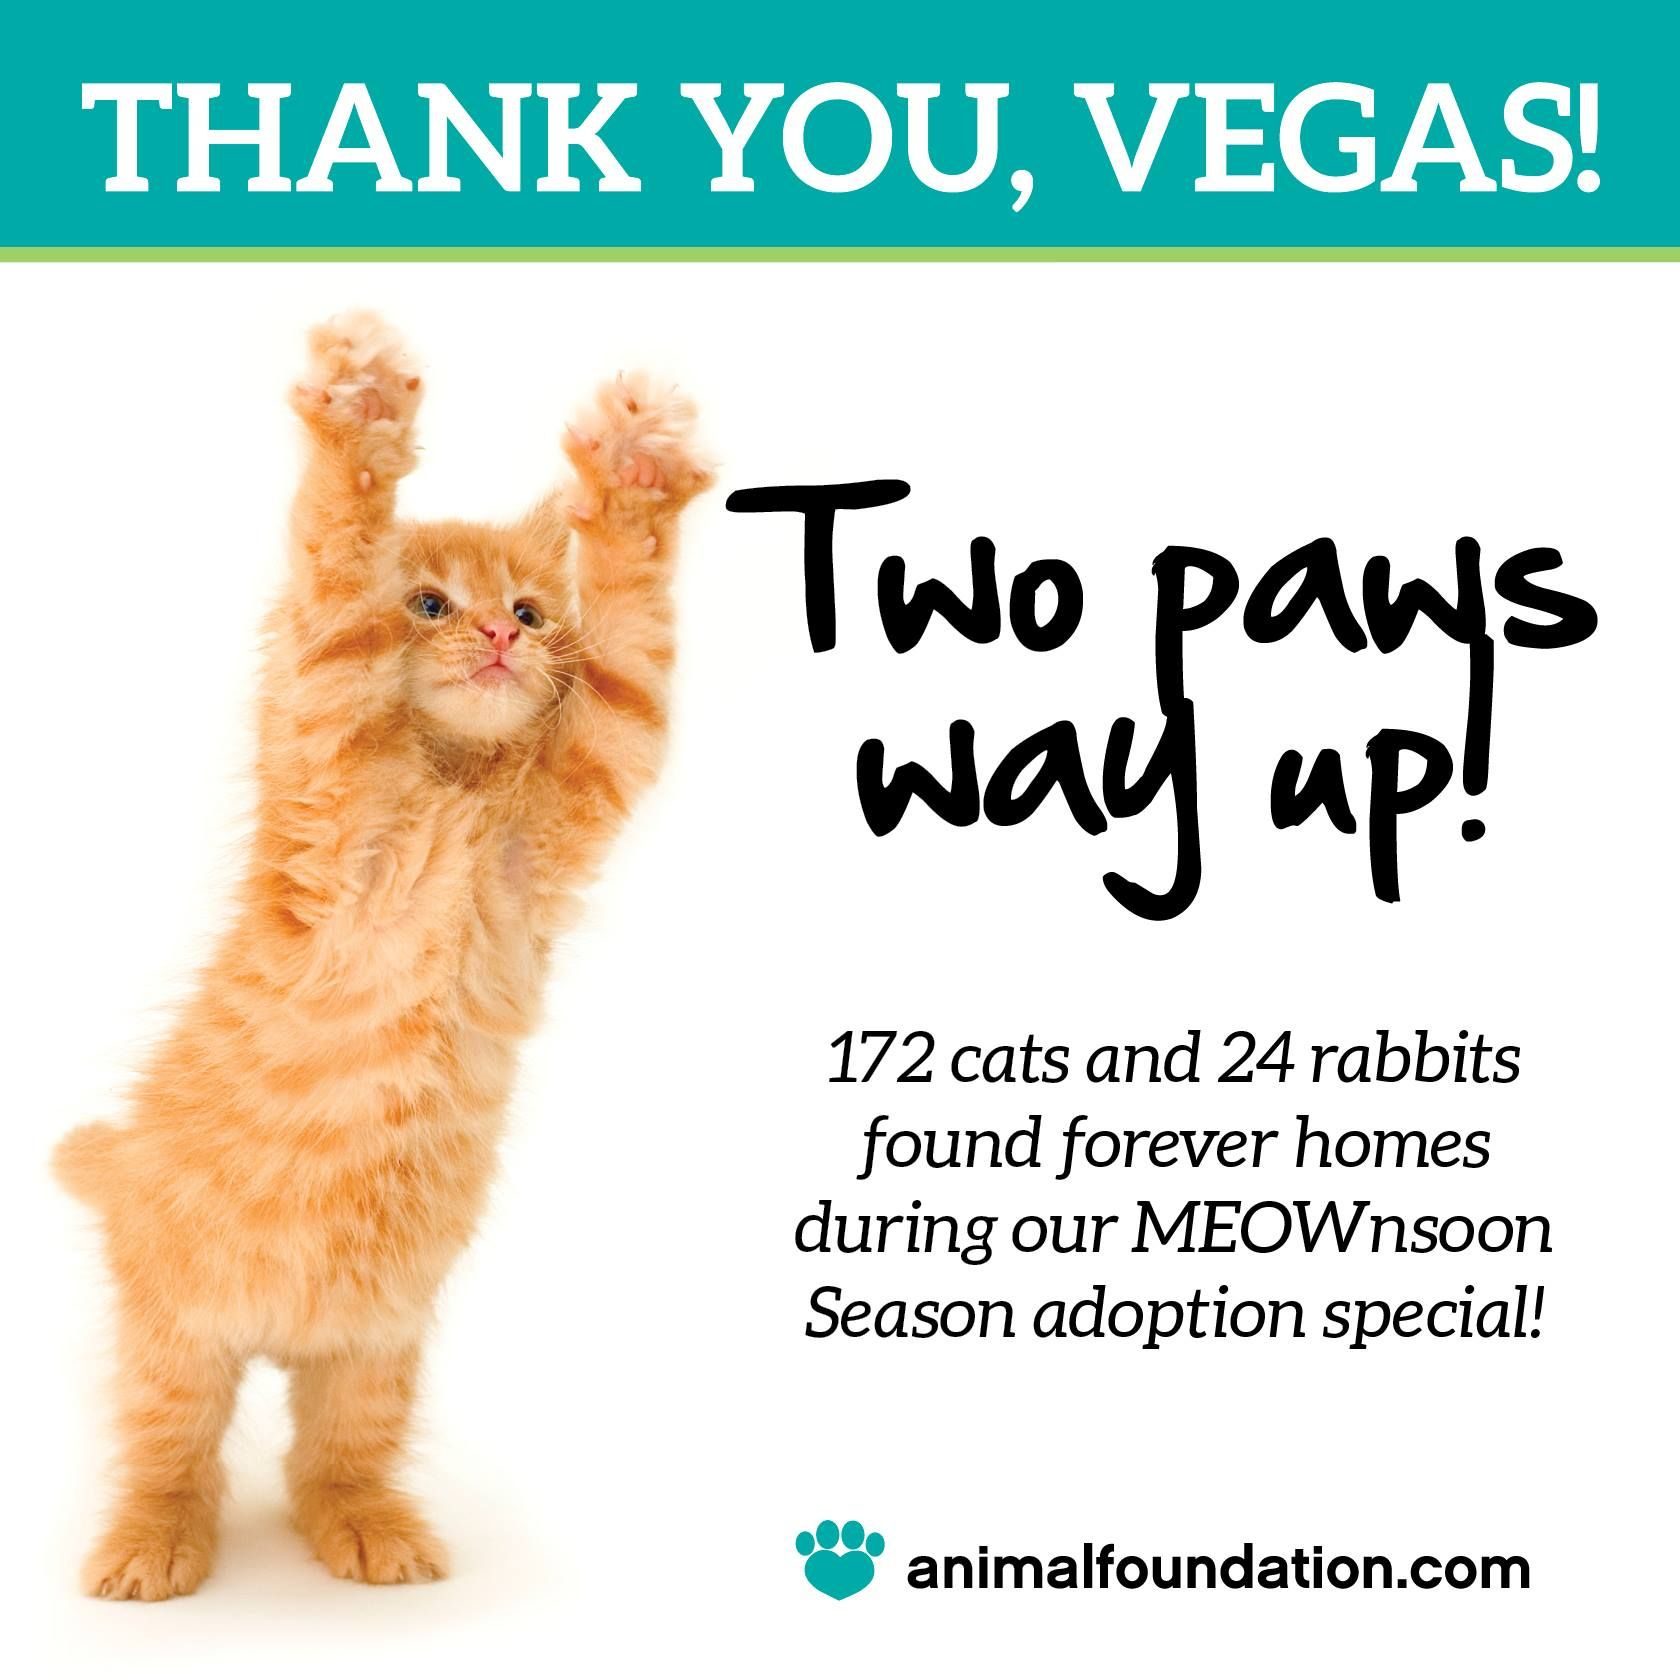 TWO PAWS UP, VEGAS! Thanks to YOUR support, 172 cats and